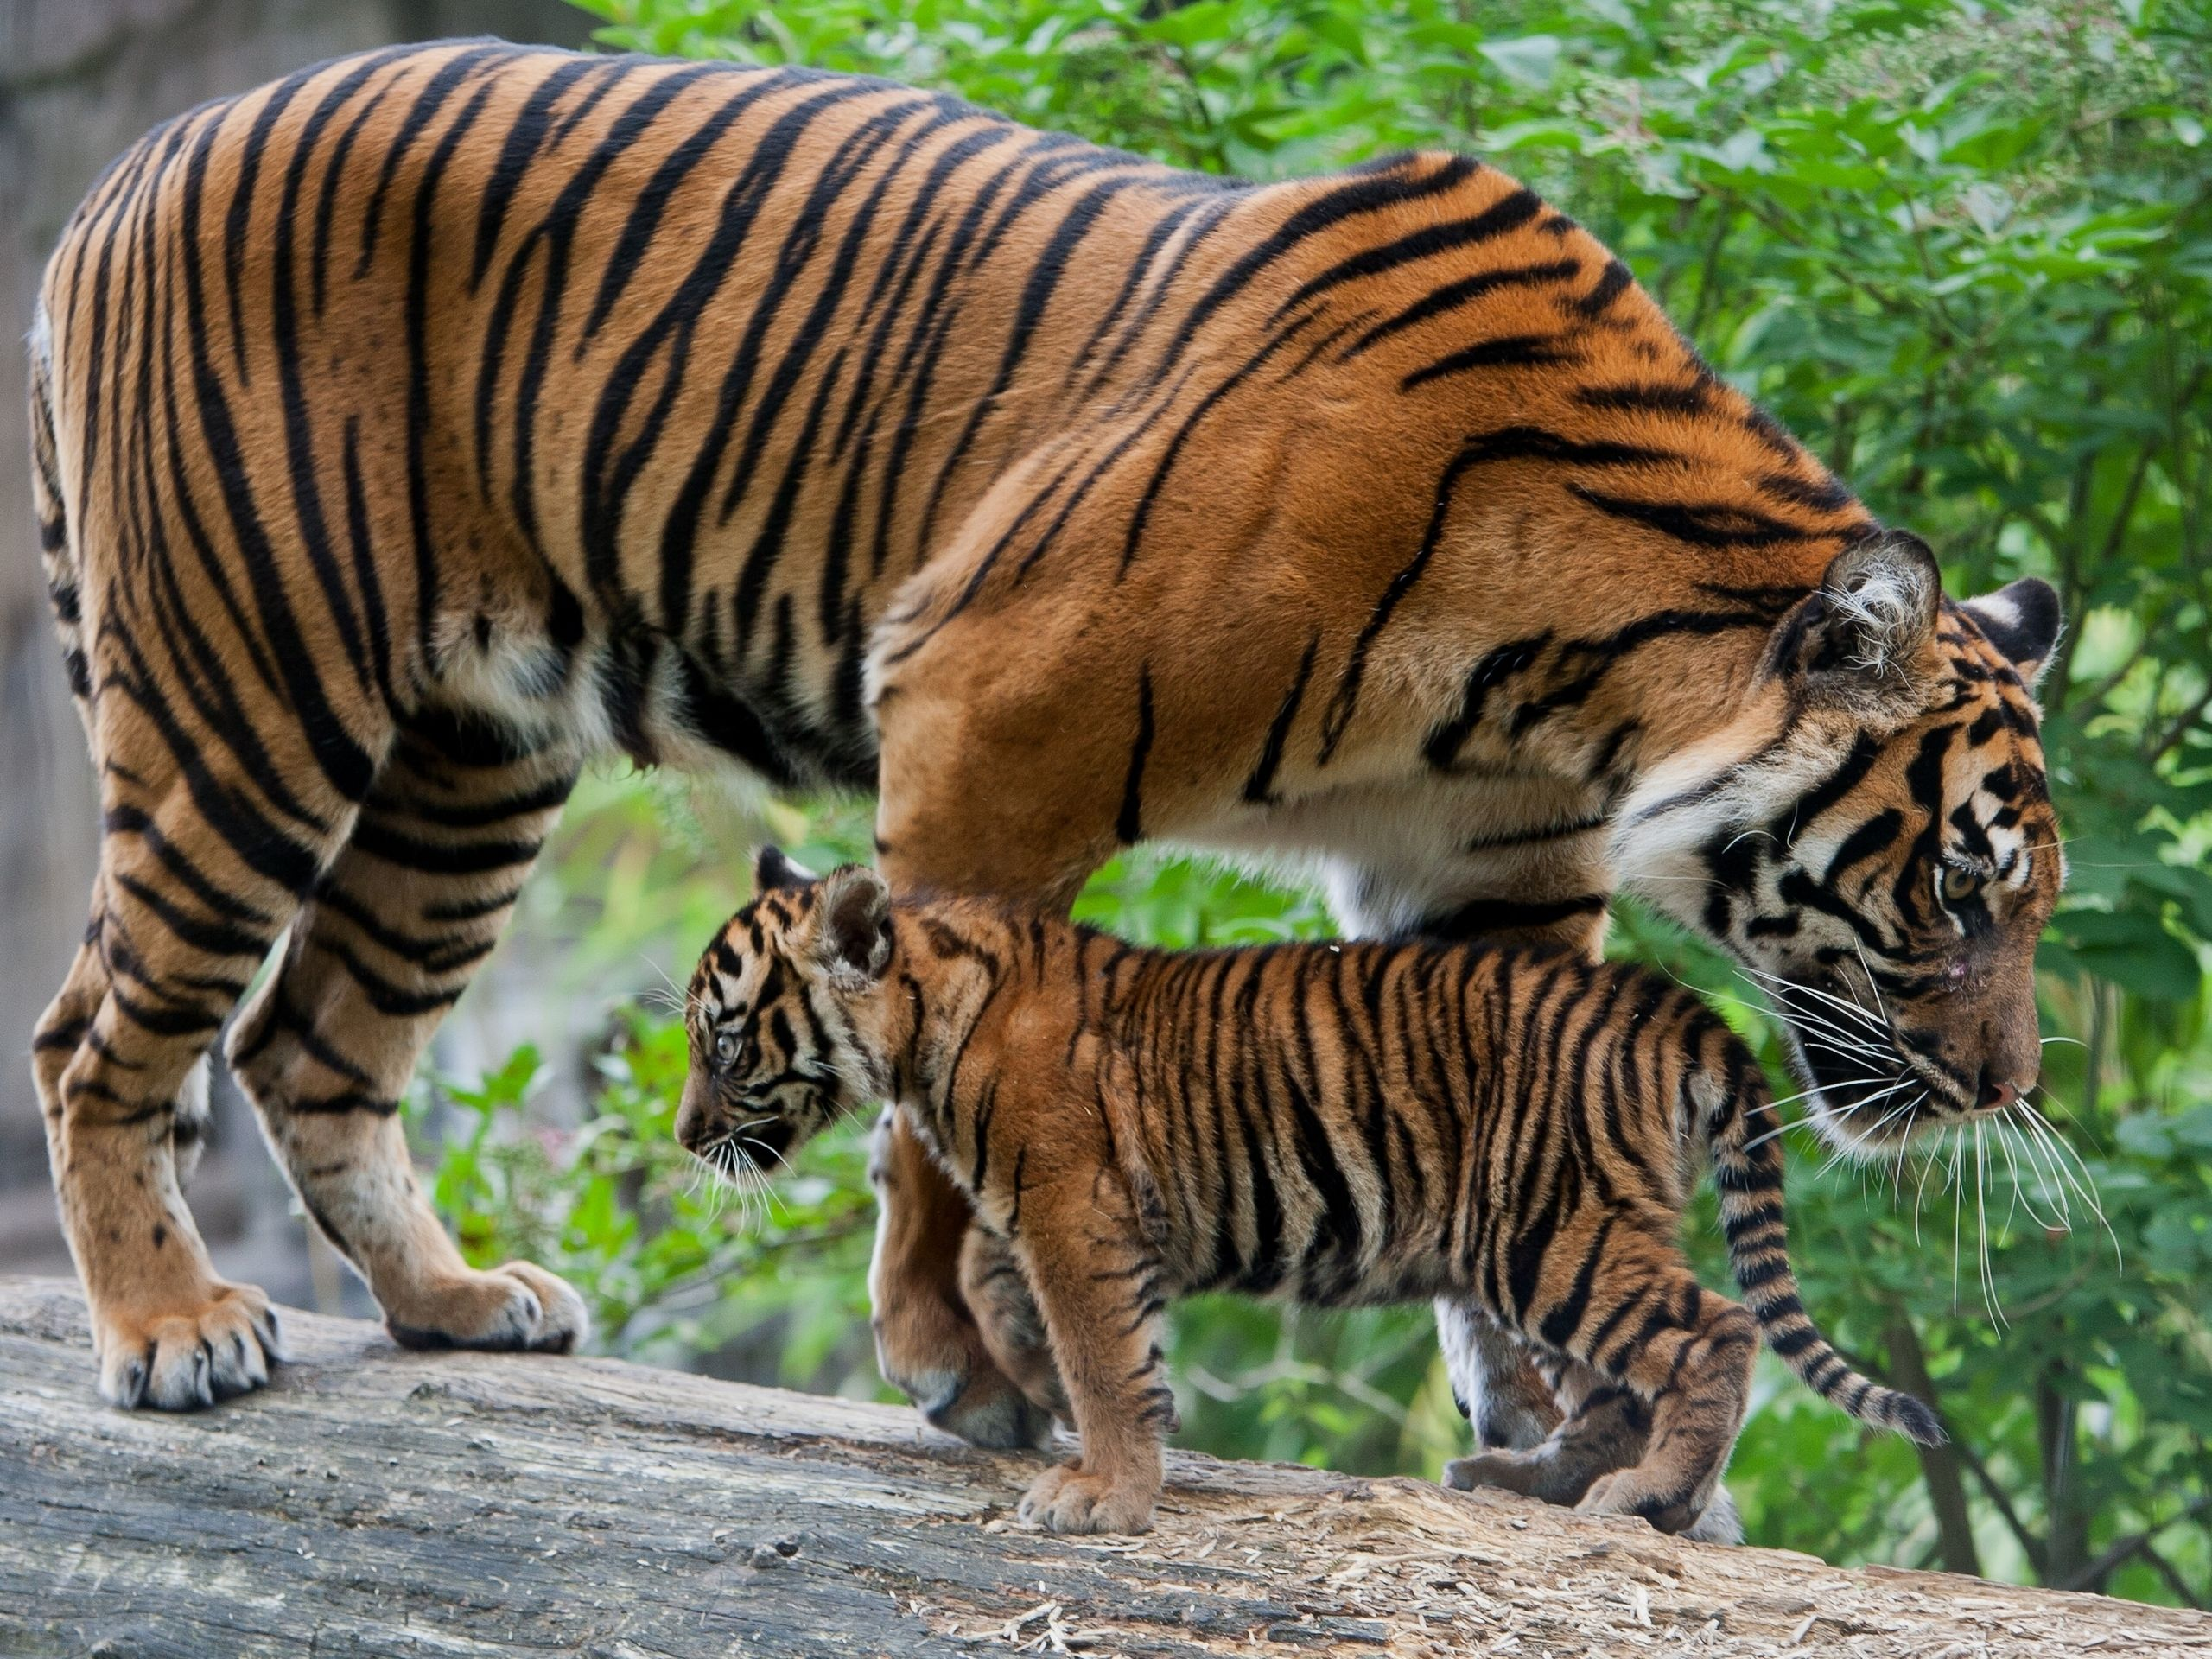 Tigress and cub in the wild wallpaper http www - Animaux wallpaper ...